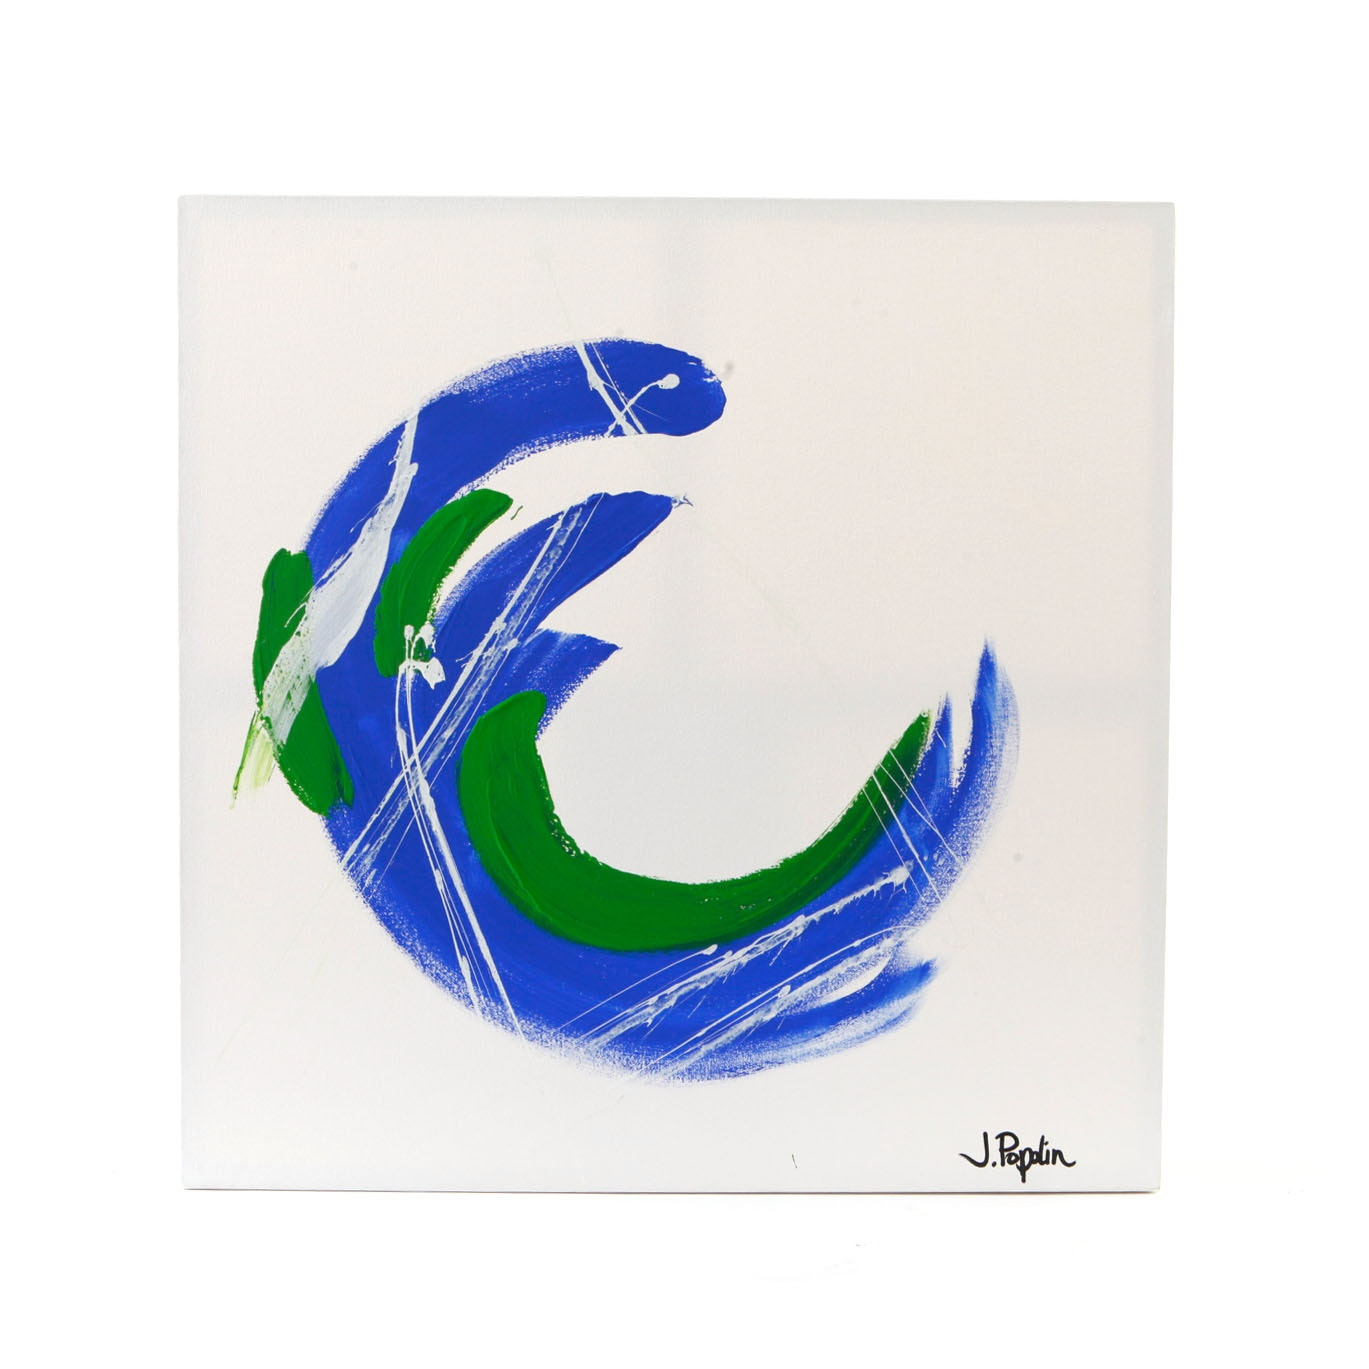 """J. Popolin Signed Acrylic Painting """"Blue Green White Wave"""""""